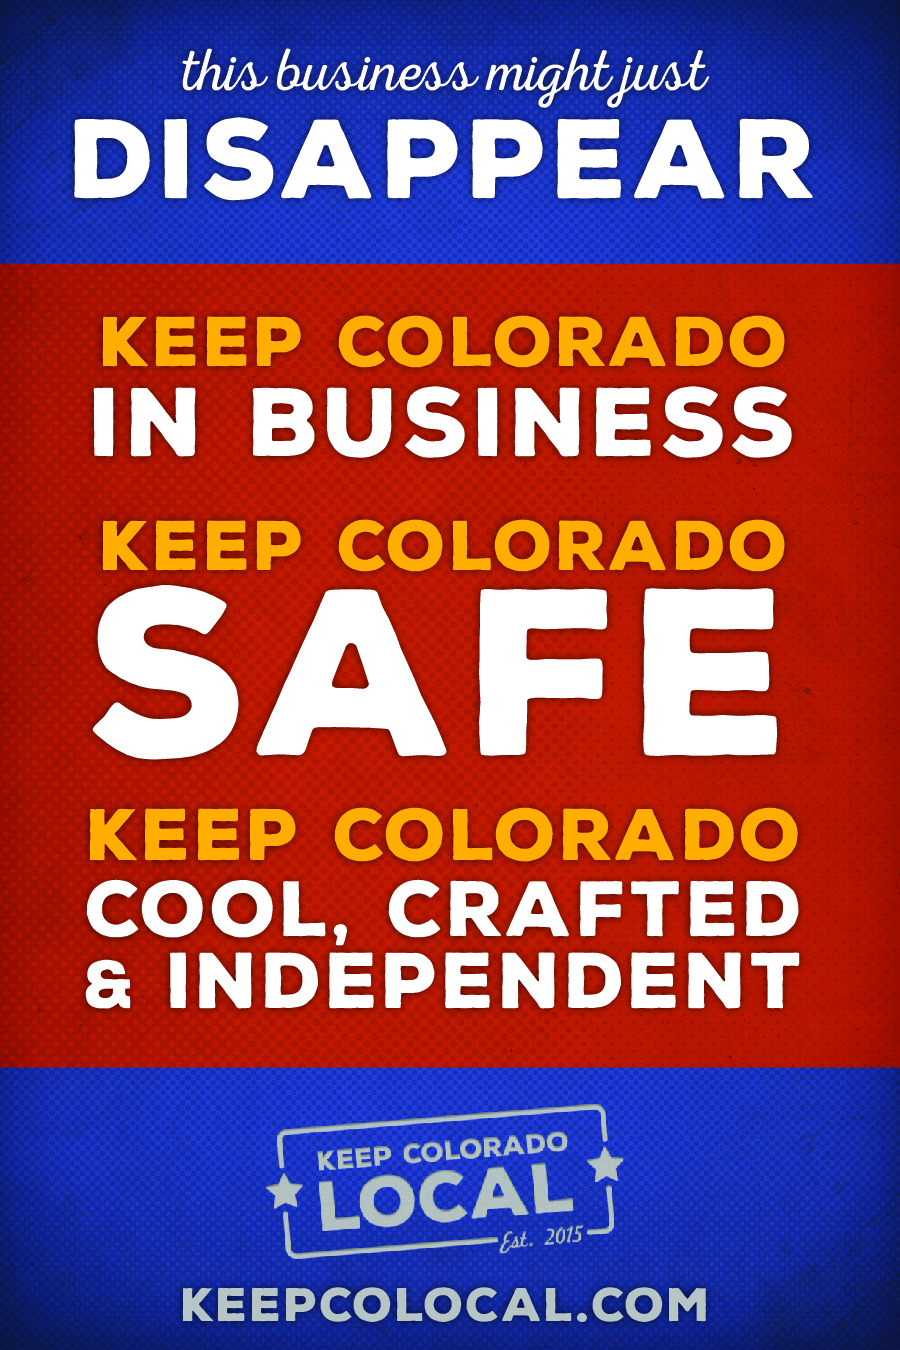 Keep Colorado Local!